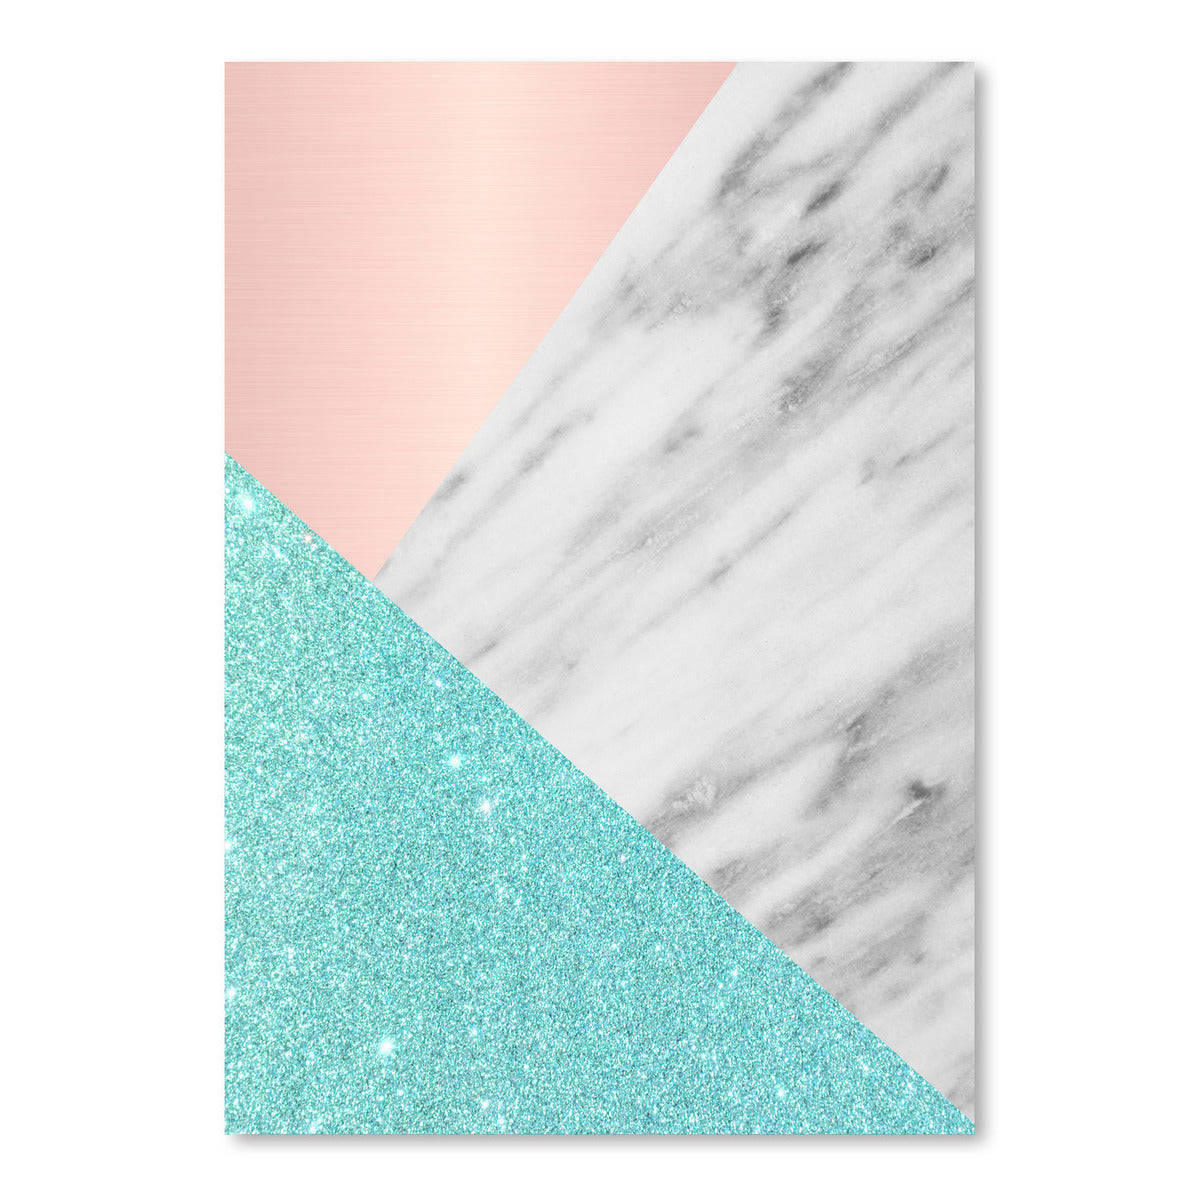 Spring Marble Collage by Emanuela Carratoni Art Print - Art Print - Americanflat